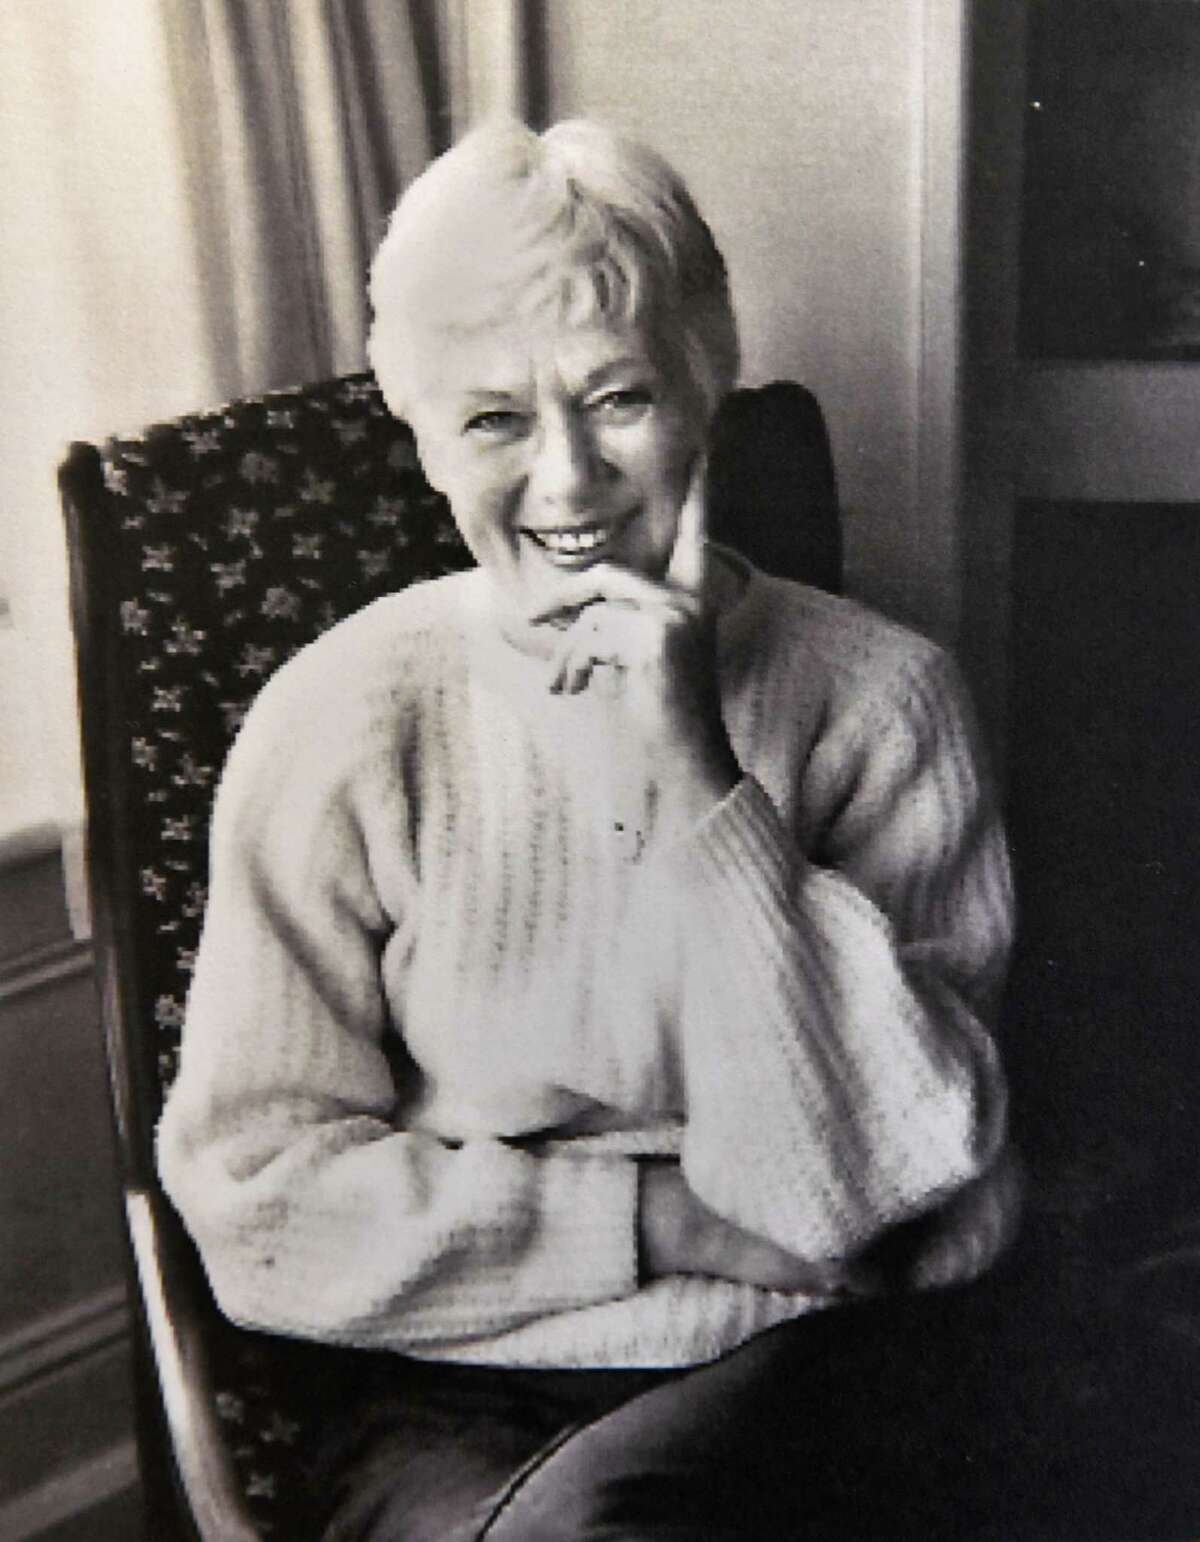 Photo courtesy of Deane Semerad Pfeil: An undated family photo of Marjorie Semerad, a popular Russell Sage College art professor. A retrospective art show of her work opens on Troy Night Out at Clements Art in Troy, NY.